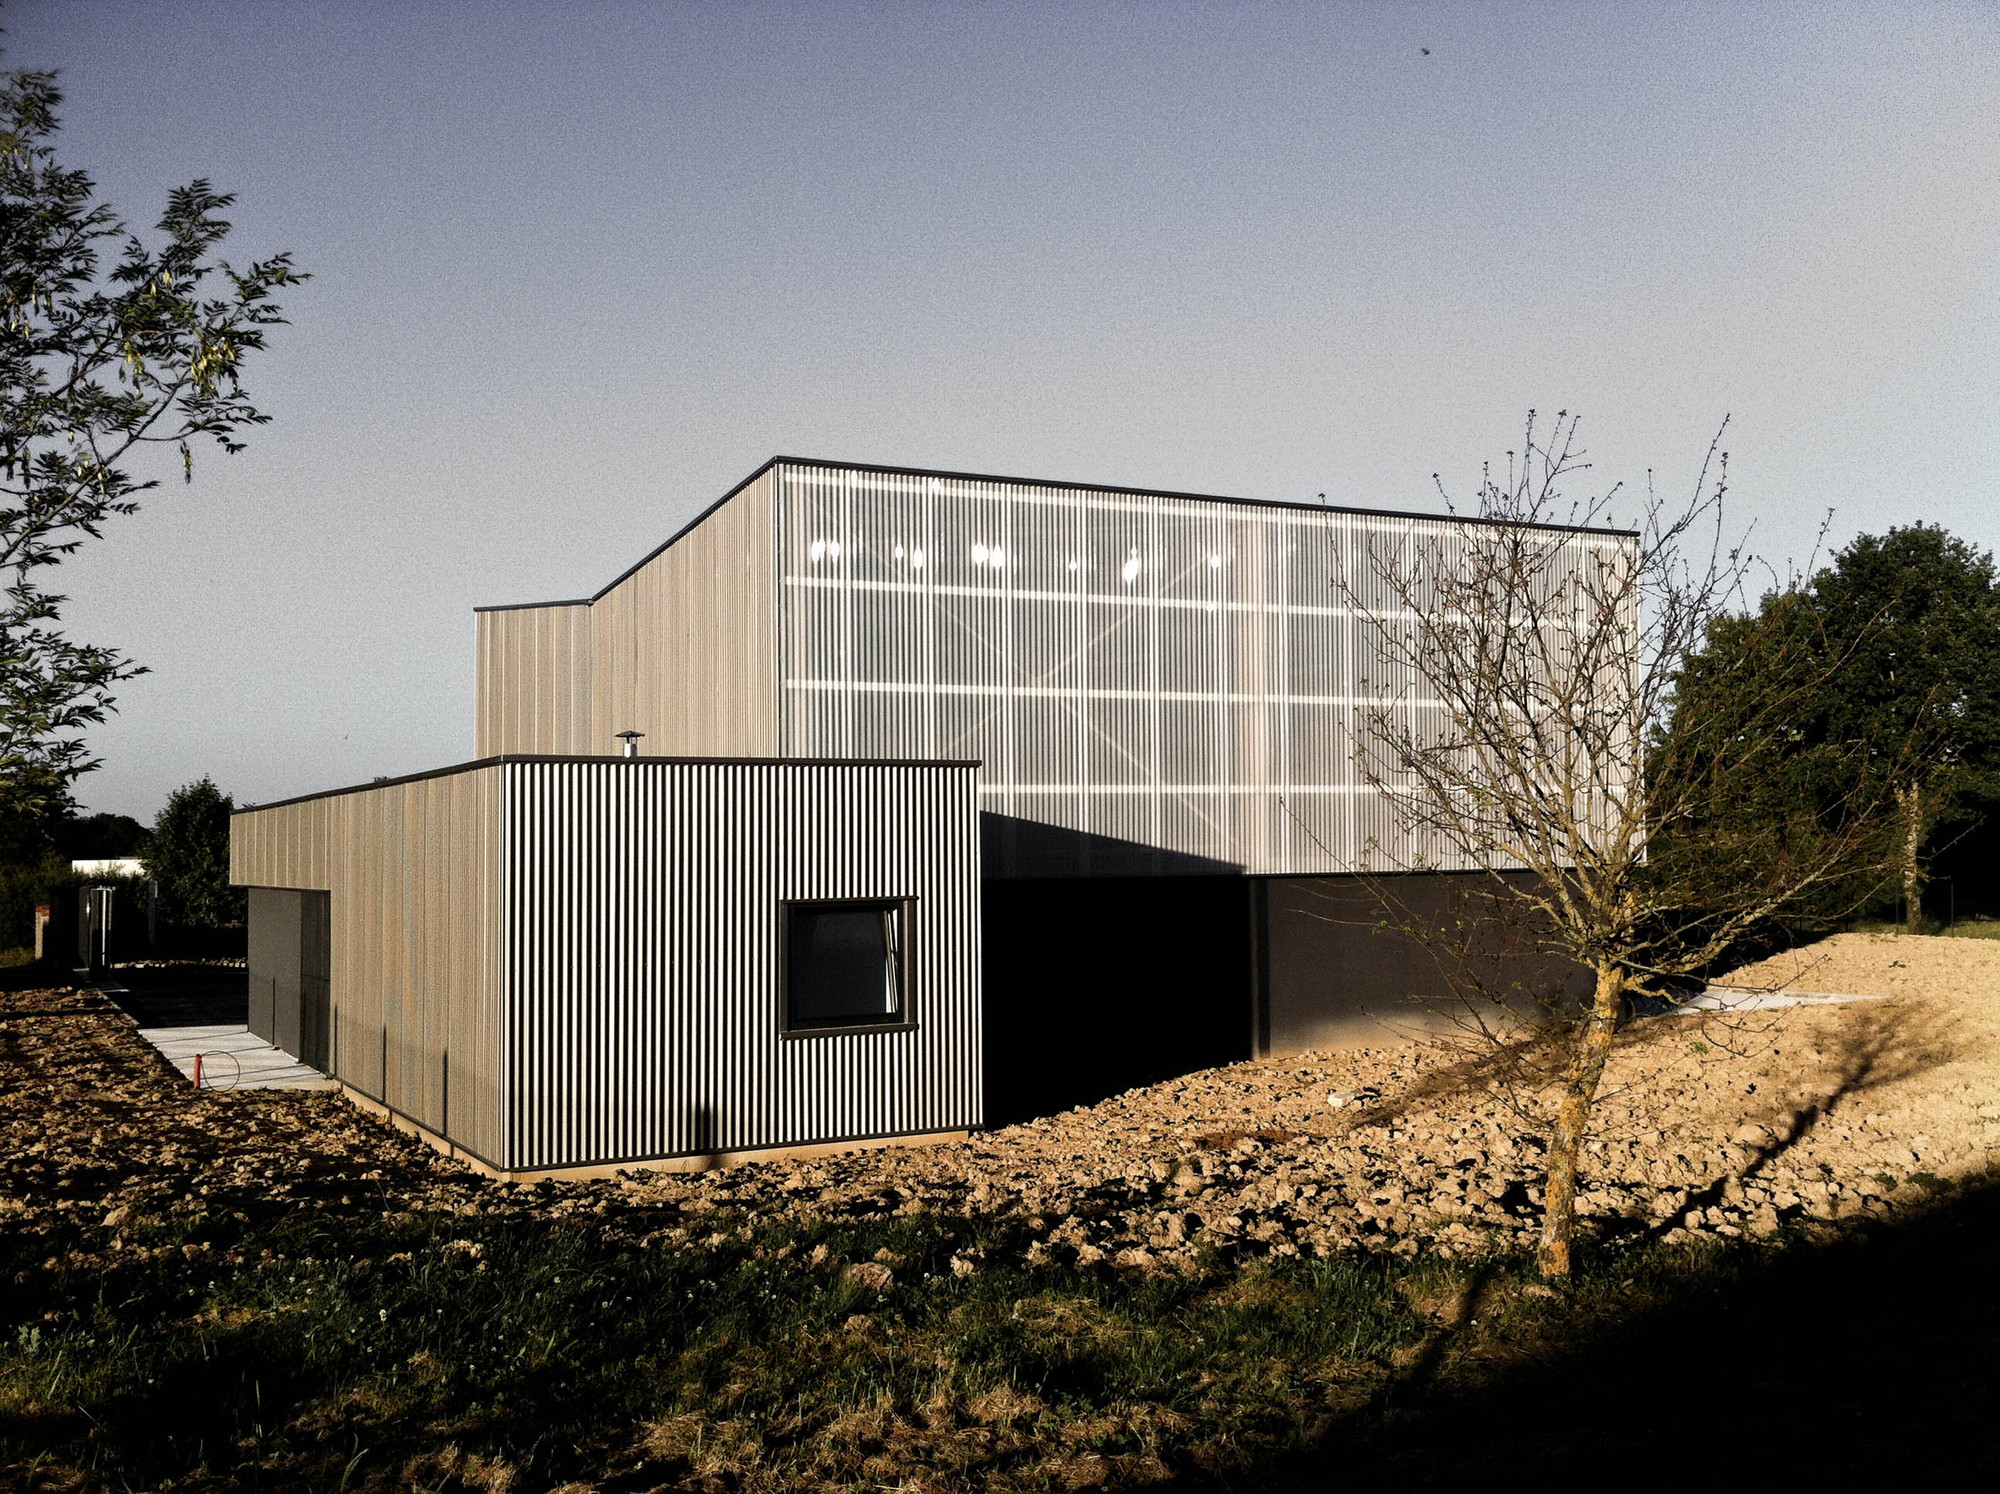 Technical Building in La Fouillade / V2S Architects, Courtesy of V2S Architects